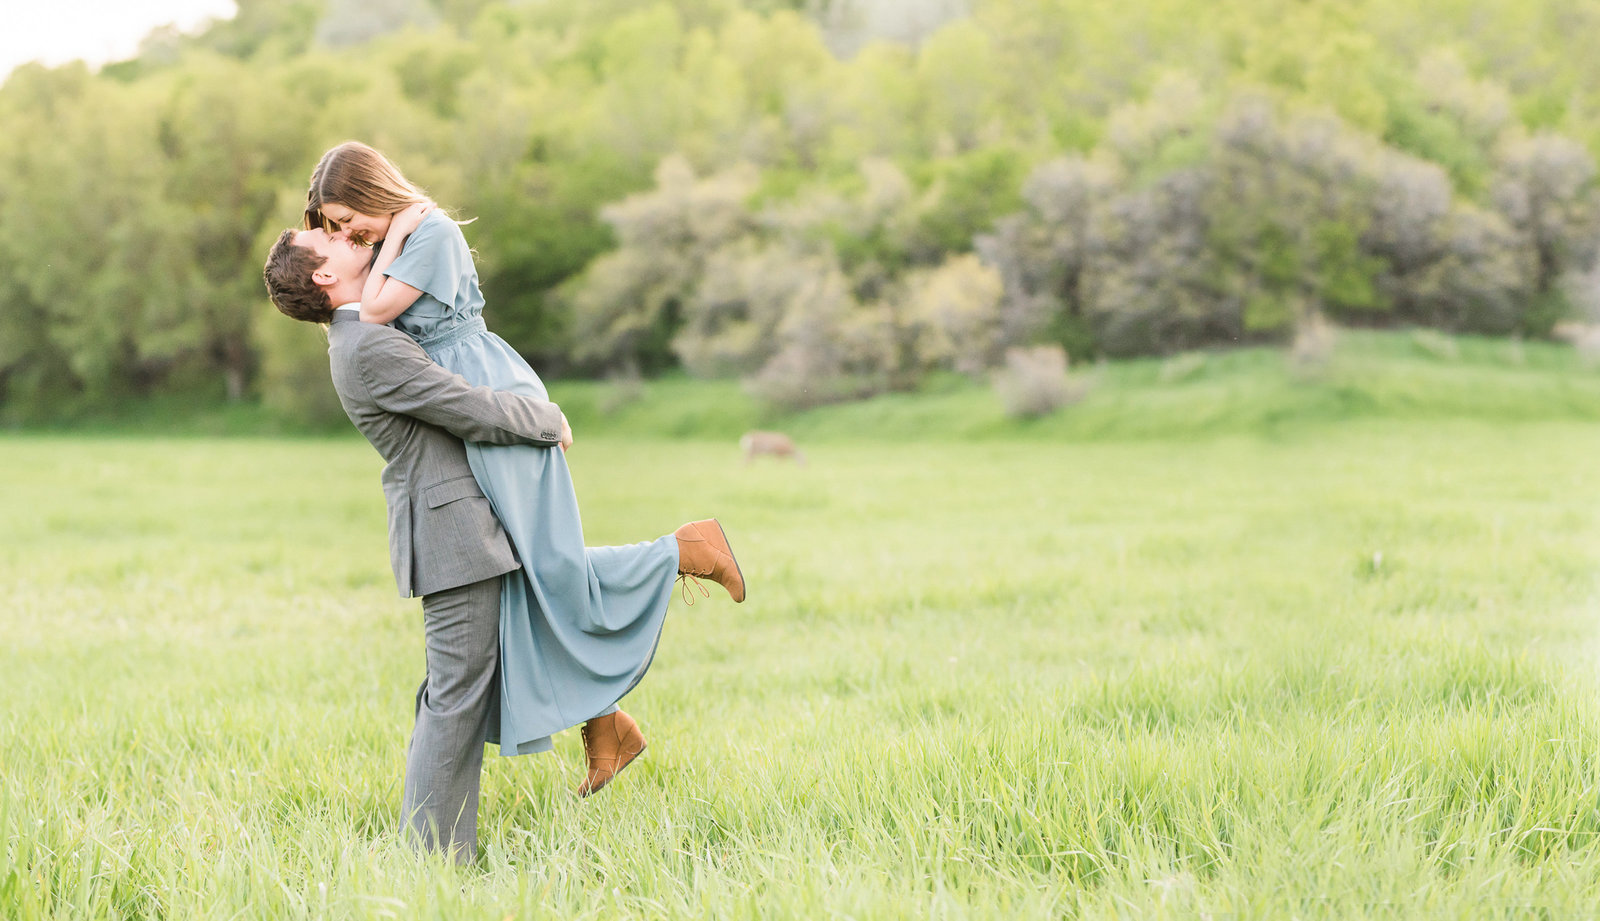 Utah Wedding Photographers - Jessie and Dallin Photography RE-011 COVER